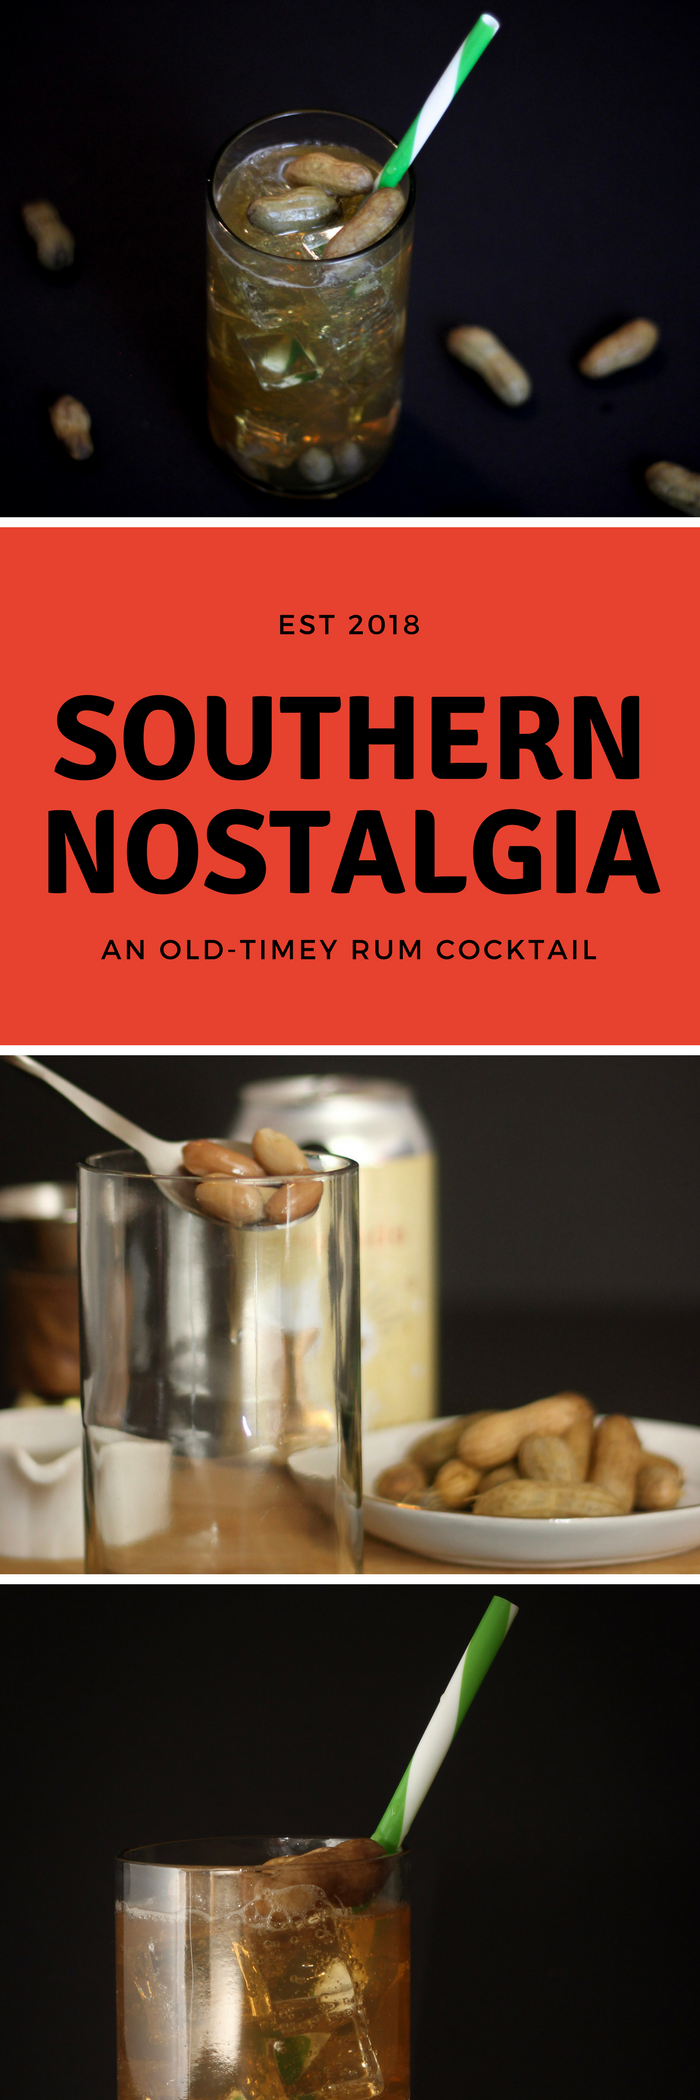 This is a simple rum cocktail rooted in southern simplicities like cream soda and boiled peanuts. It will surprise you and take you back to the good ol' days. #RumCocktail #CocktailRecipe